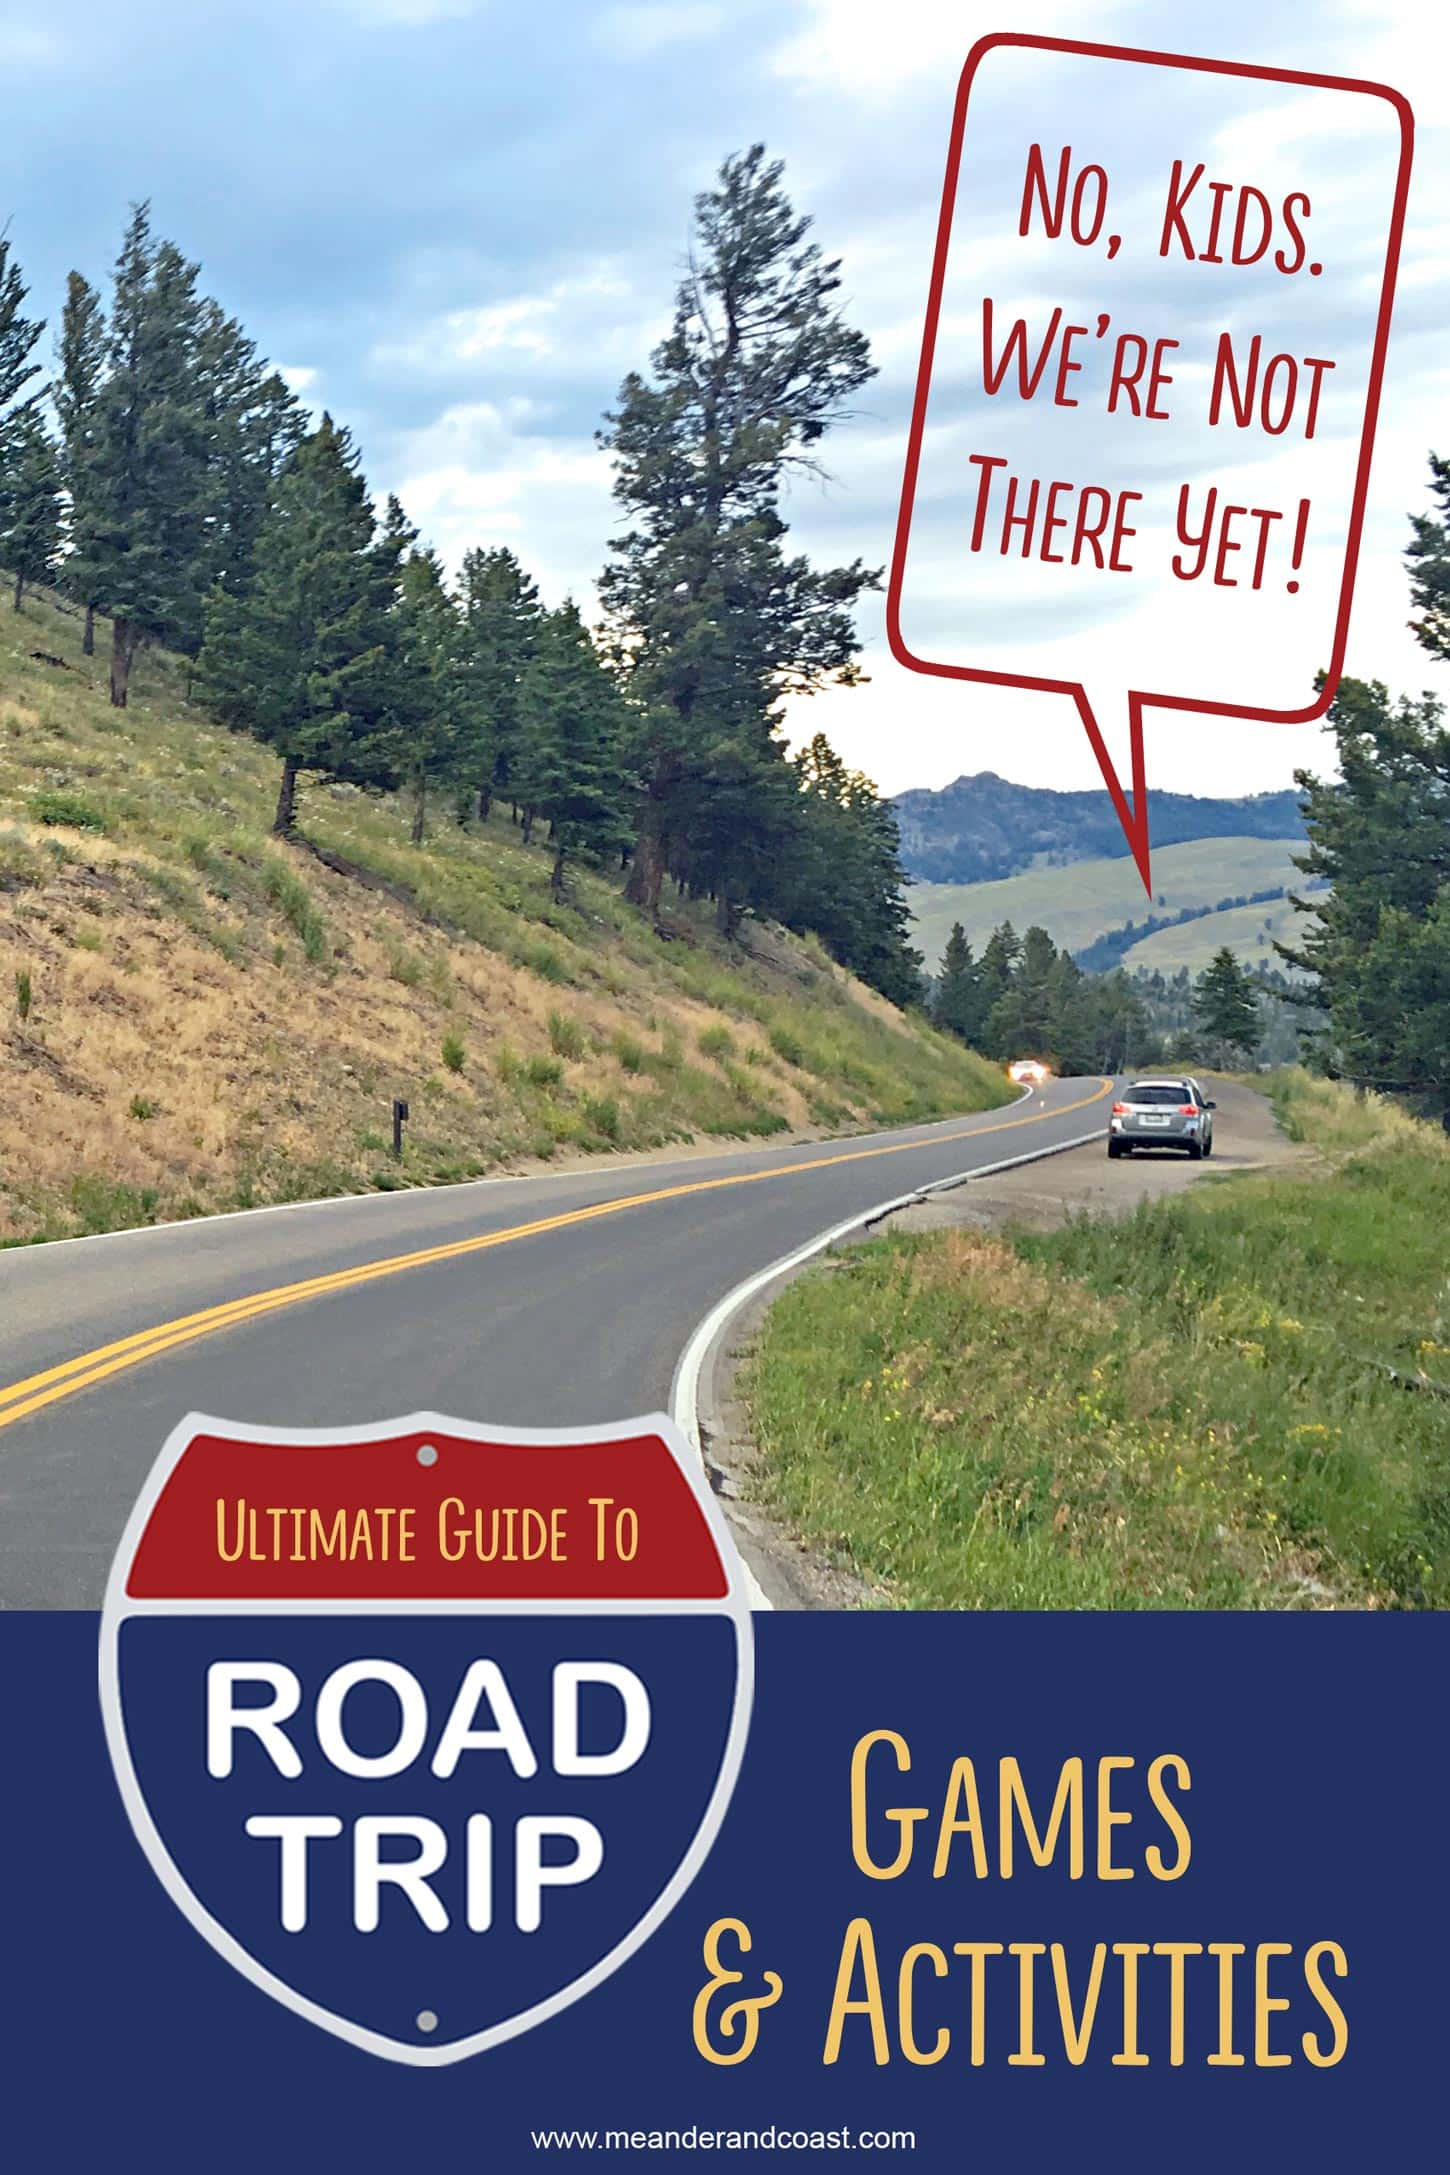 This will be perfect for our summer trip! Ultimate guide to family road trip car games. Ideas from teens to toddlers. | Meander & Coast #travelgames #roadtripgames #roadtrip #teens #tweens #kids #familytravel